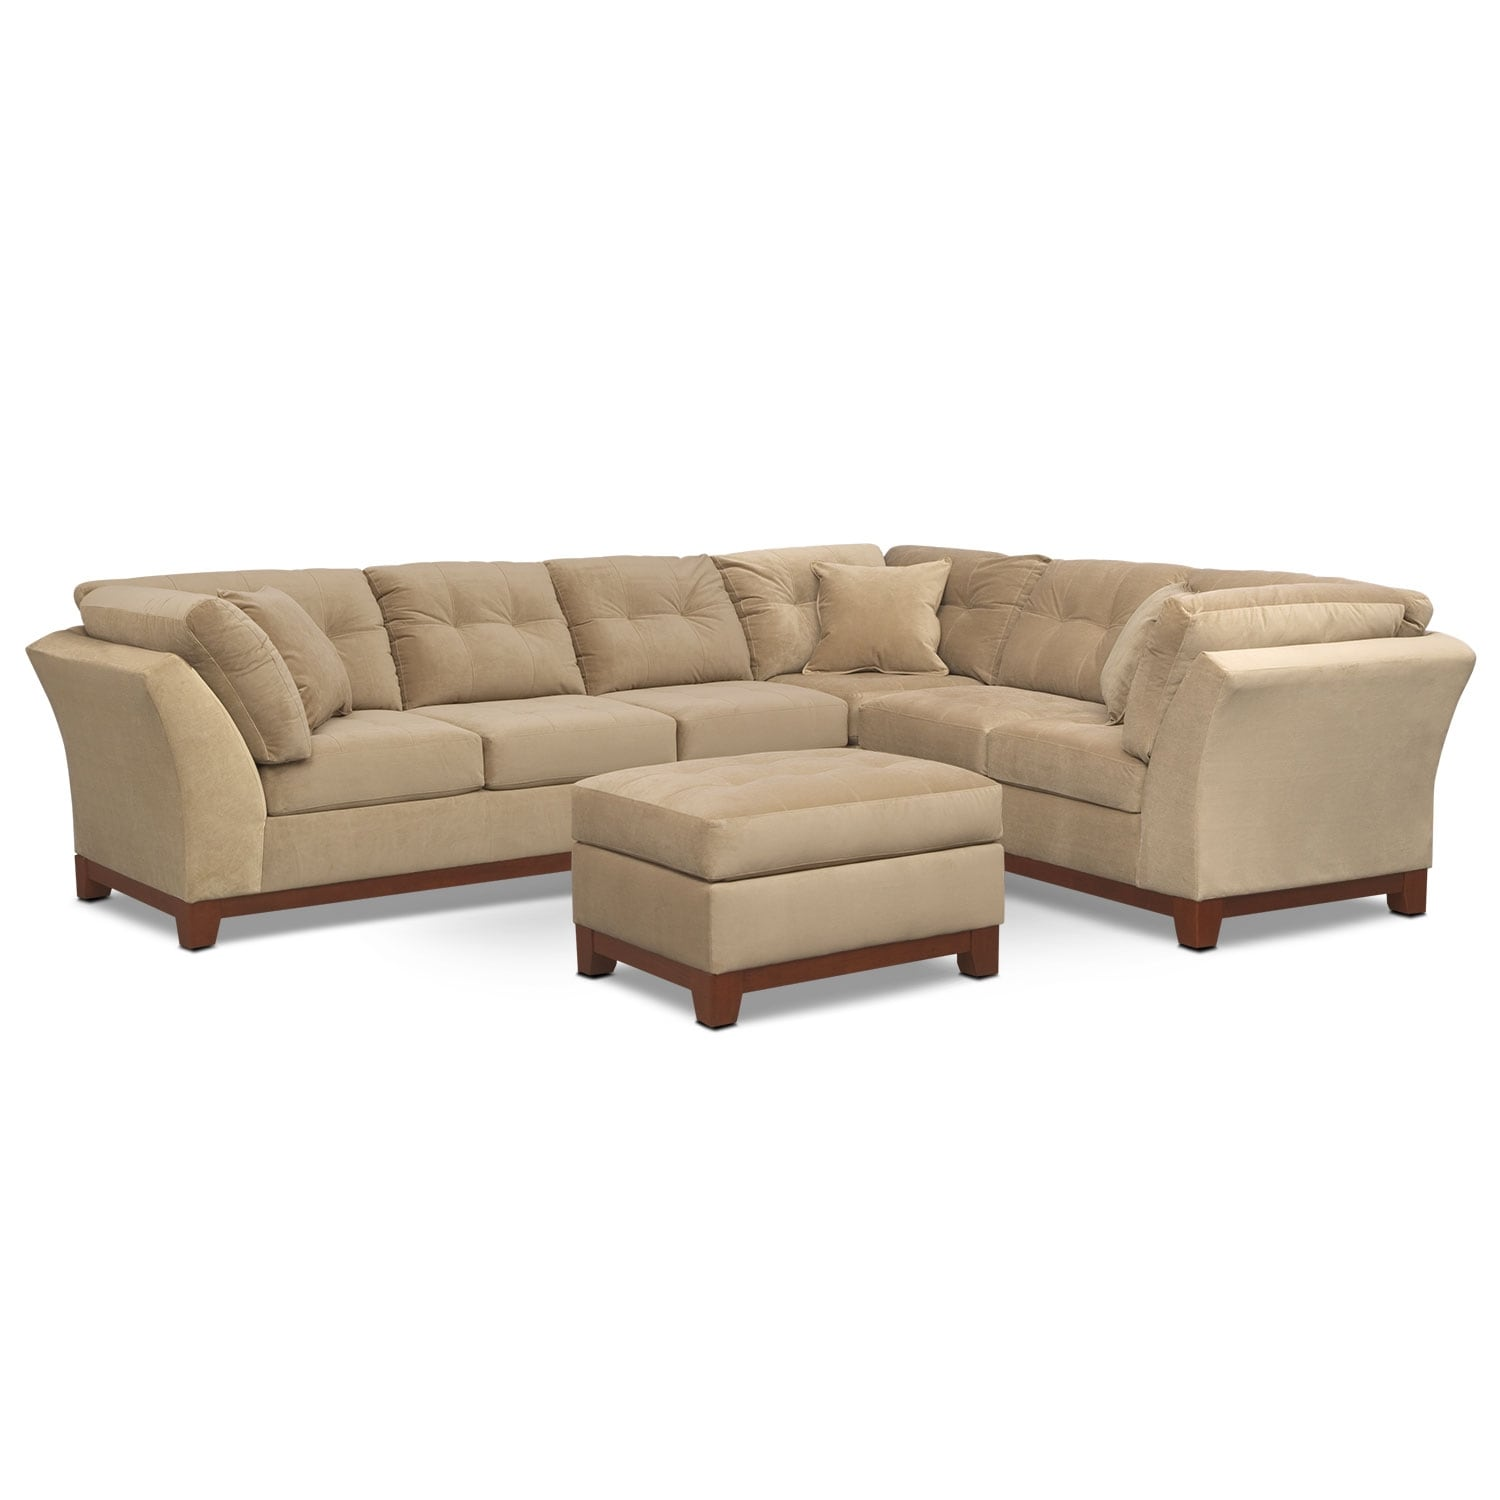 Living Room Furniture - Solace Cocoa II 3 Pc. Sectional (Reverse) and Ottoman